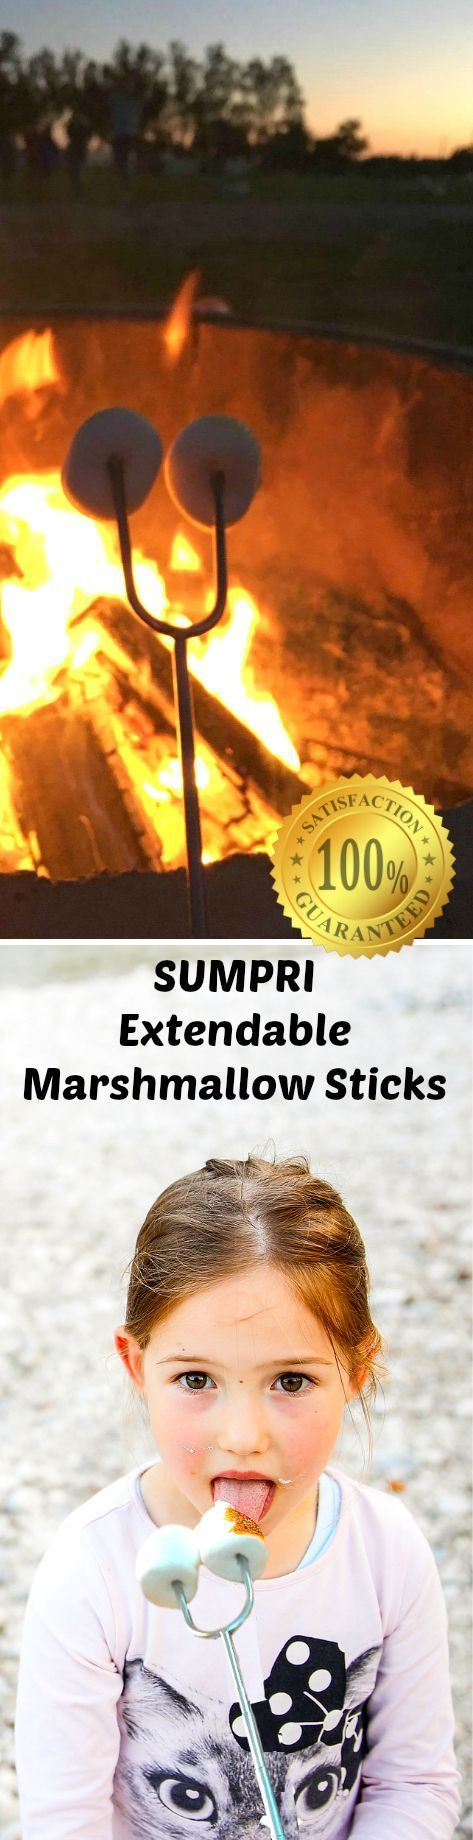 SUMPRI Barbeqa Marshmallow Roasting Sticks Telescoping Marshmallow Jungle Stix Extra Long 34 Set of 6 Campfire Forks Cooking Skewers for Smores, Hotdogs, Camping Cookware, Backpacking Gear, Bbq Grill, Fireplace Tools, Fire Pit Accessories This set of 6 forks is made by #sumpri #marshmallow #sticks #marshmallowroastingsticks #smoressticks #campfiresticks #smores #smoressticks SUMPRI Barbeqa Marshmallow Roasting Sticks Telescoping Marshmallow Jungle Stix Extra Long 34 Set of 6 Campfire Forks Cook #marshmallowsticks